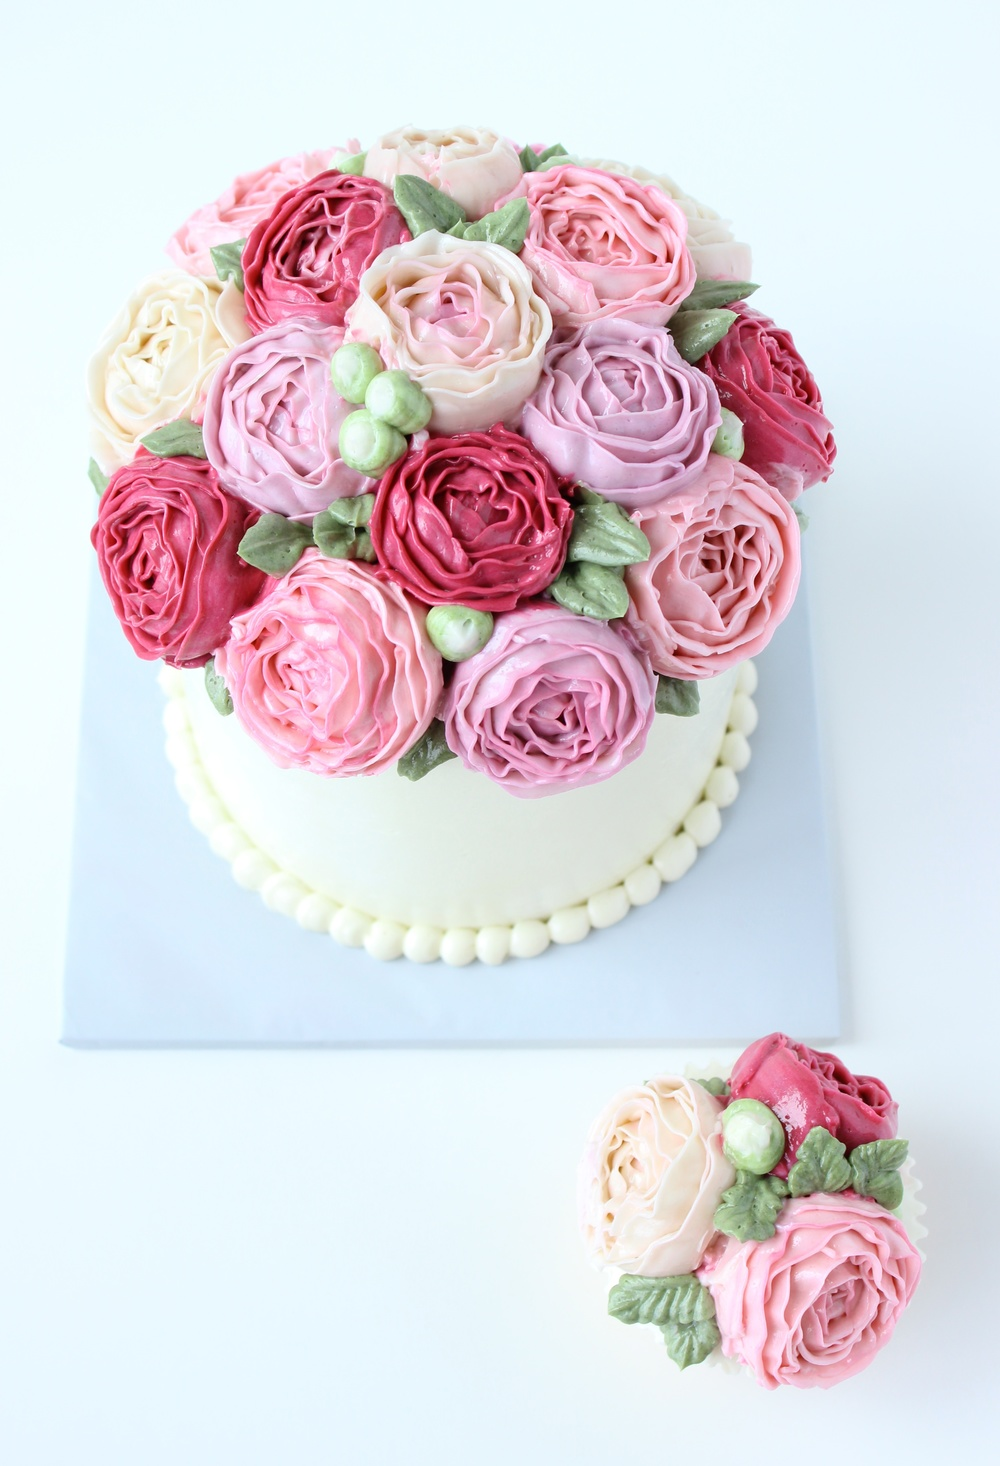 Pink buttercream bouquet cake eat cake be merry custom cakes nynj pink buttercream bouquet cake izmirmasajfo